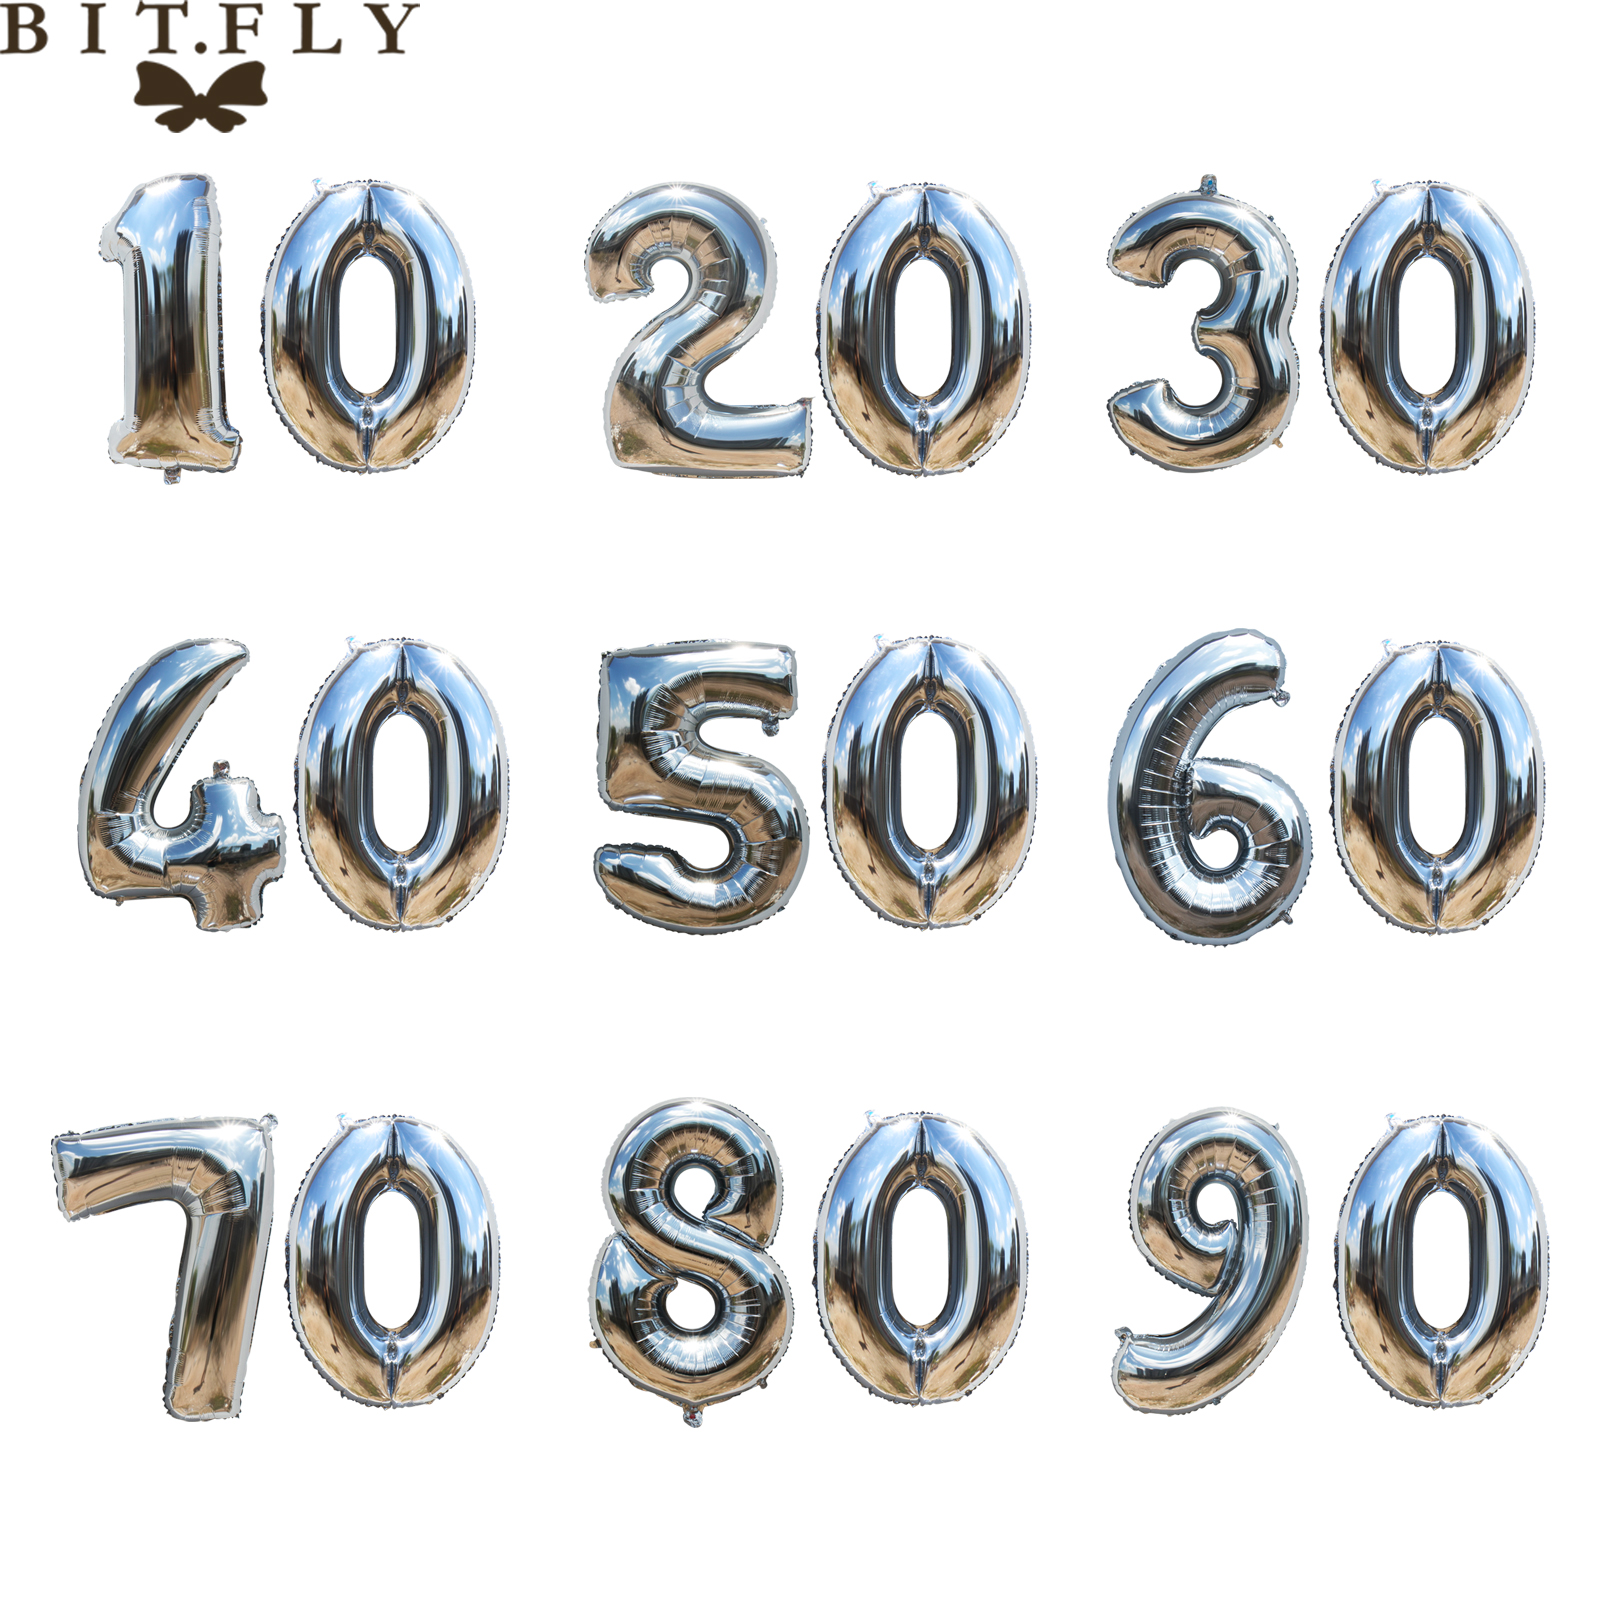 40 inch <font><b>Birthday</b></font> <font><b>party</b></font> Gold sliver aluminum foil number Balloons 10 20 30 40 50 60 <font><b>70</b></font> 80 90 years Anniversary DIY decoration image